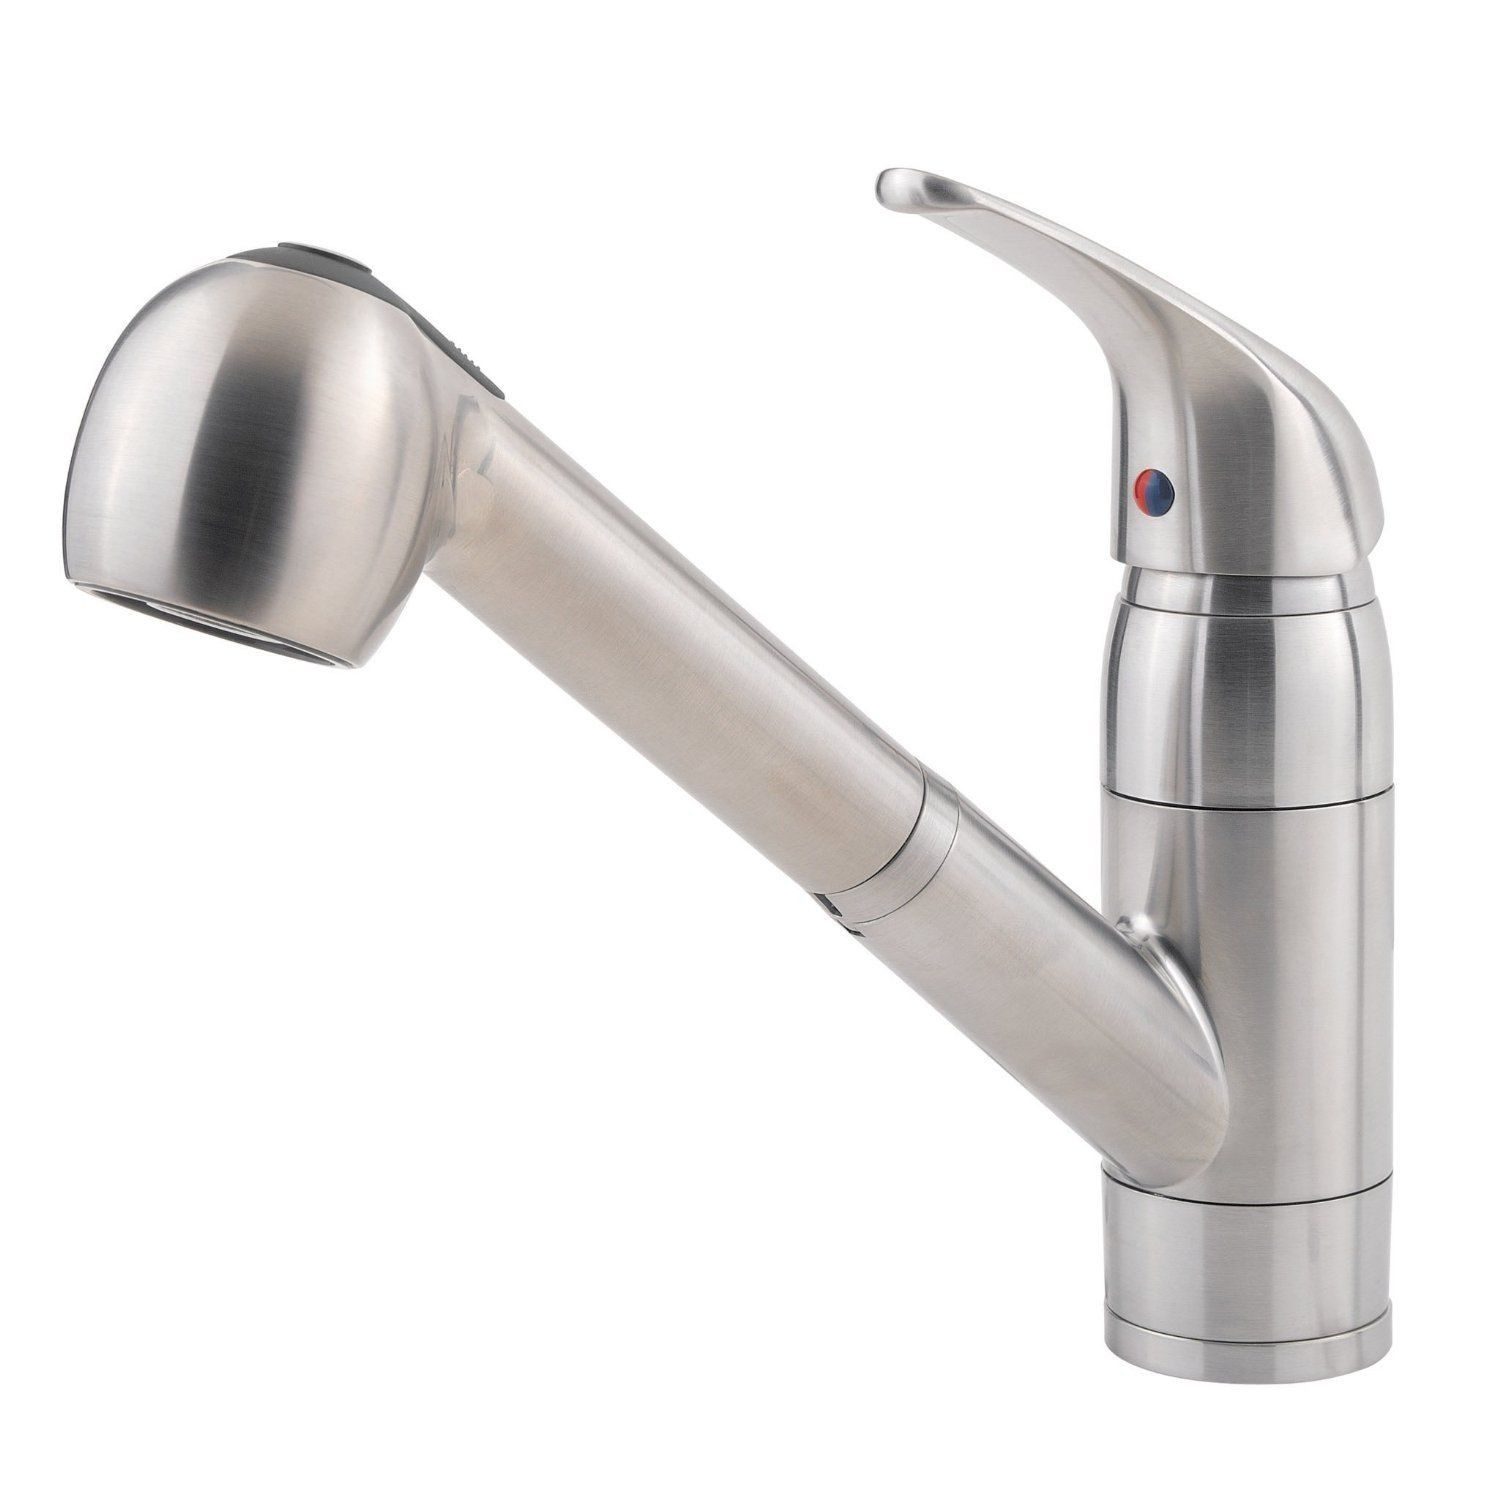 Best of high end kitchen faucets reviews